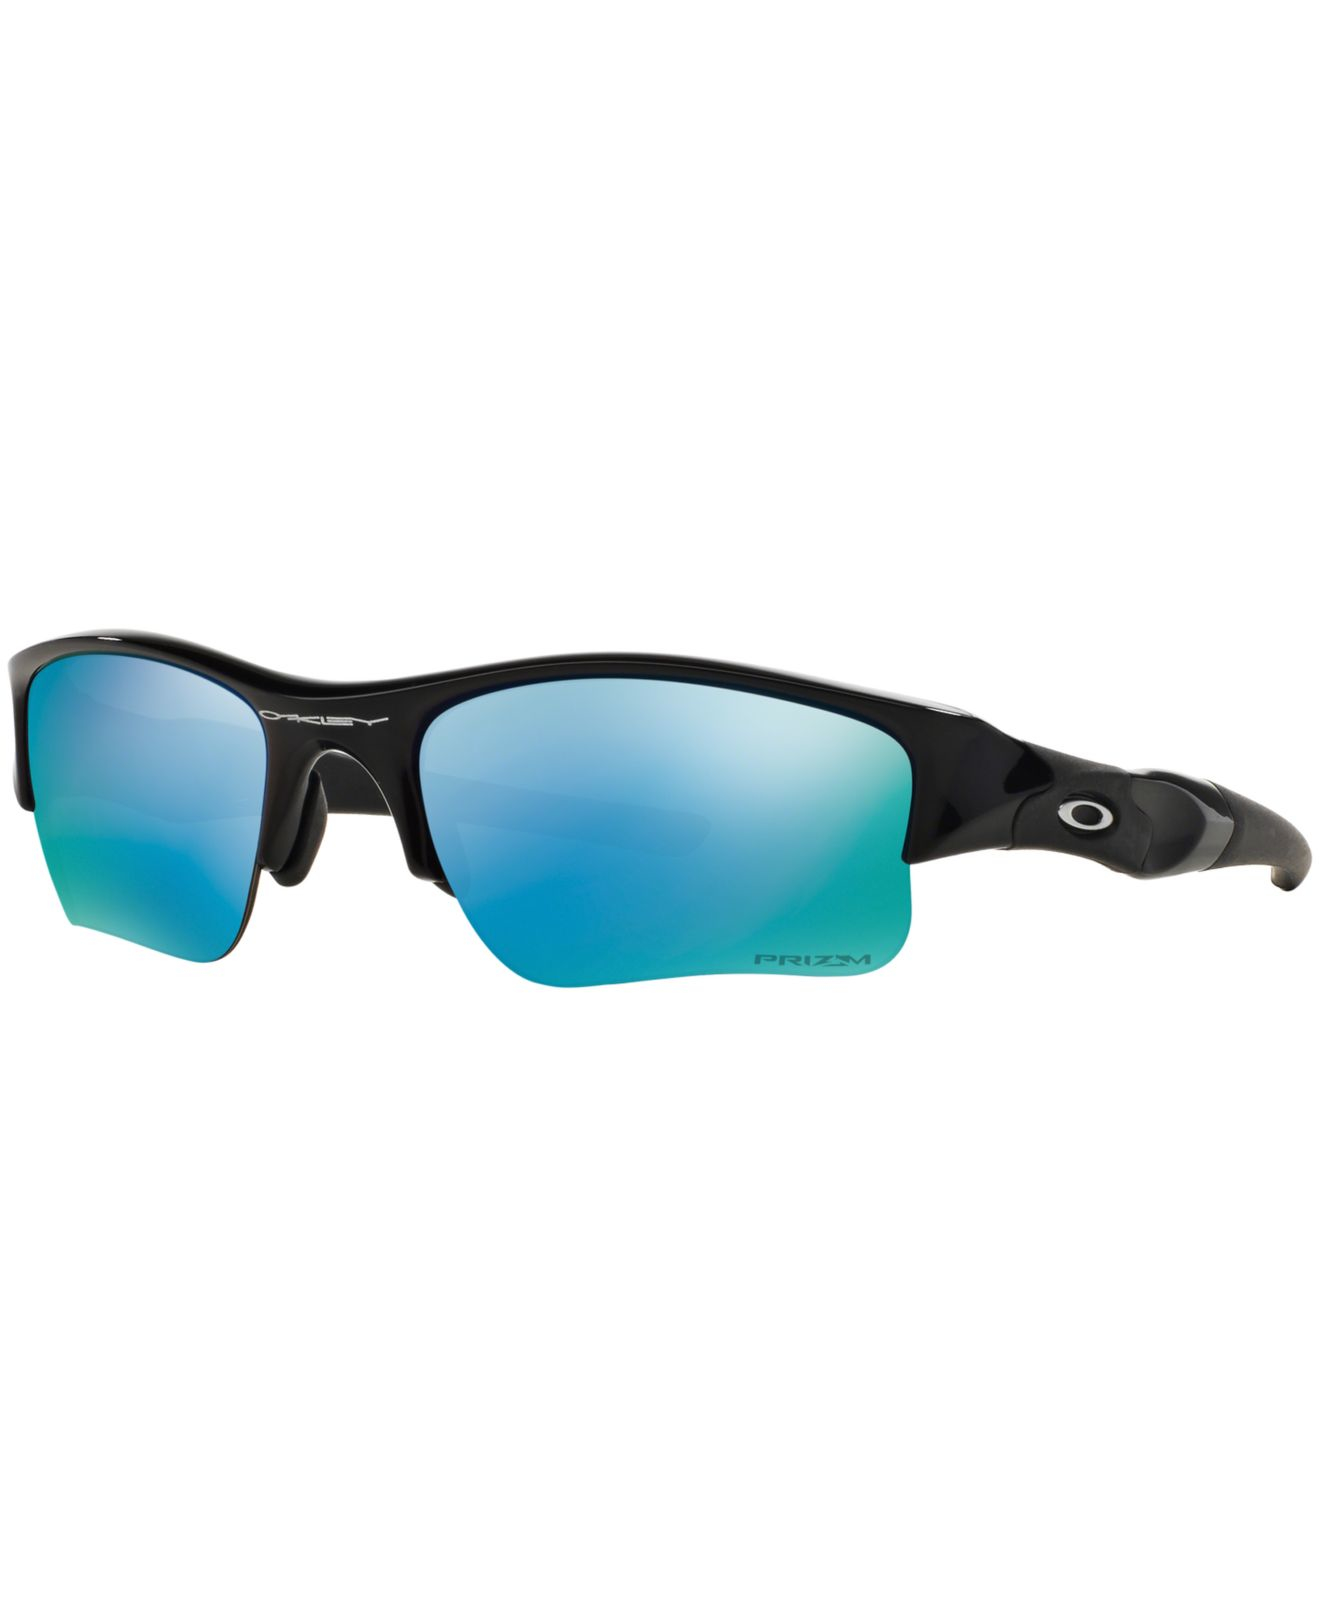 da61f9bfaeb Oakley Xlj Flak Jacket Polarized Fit On People « Heritage Malta